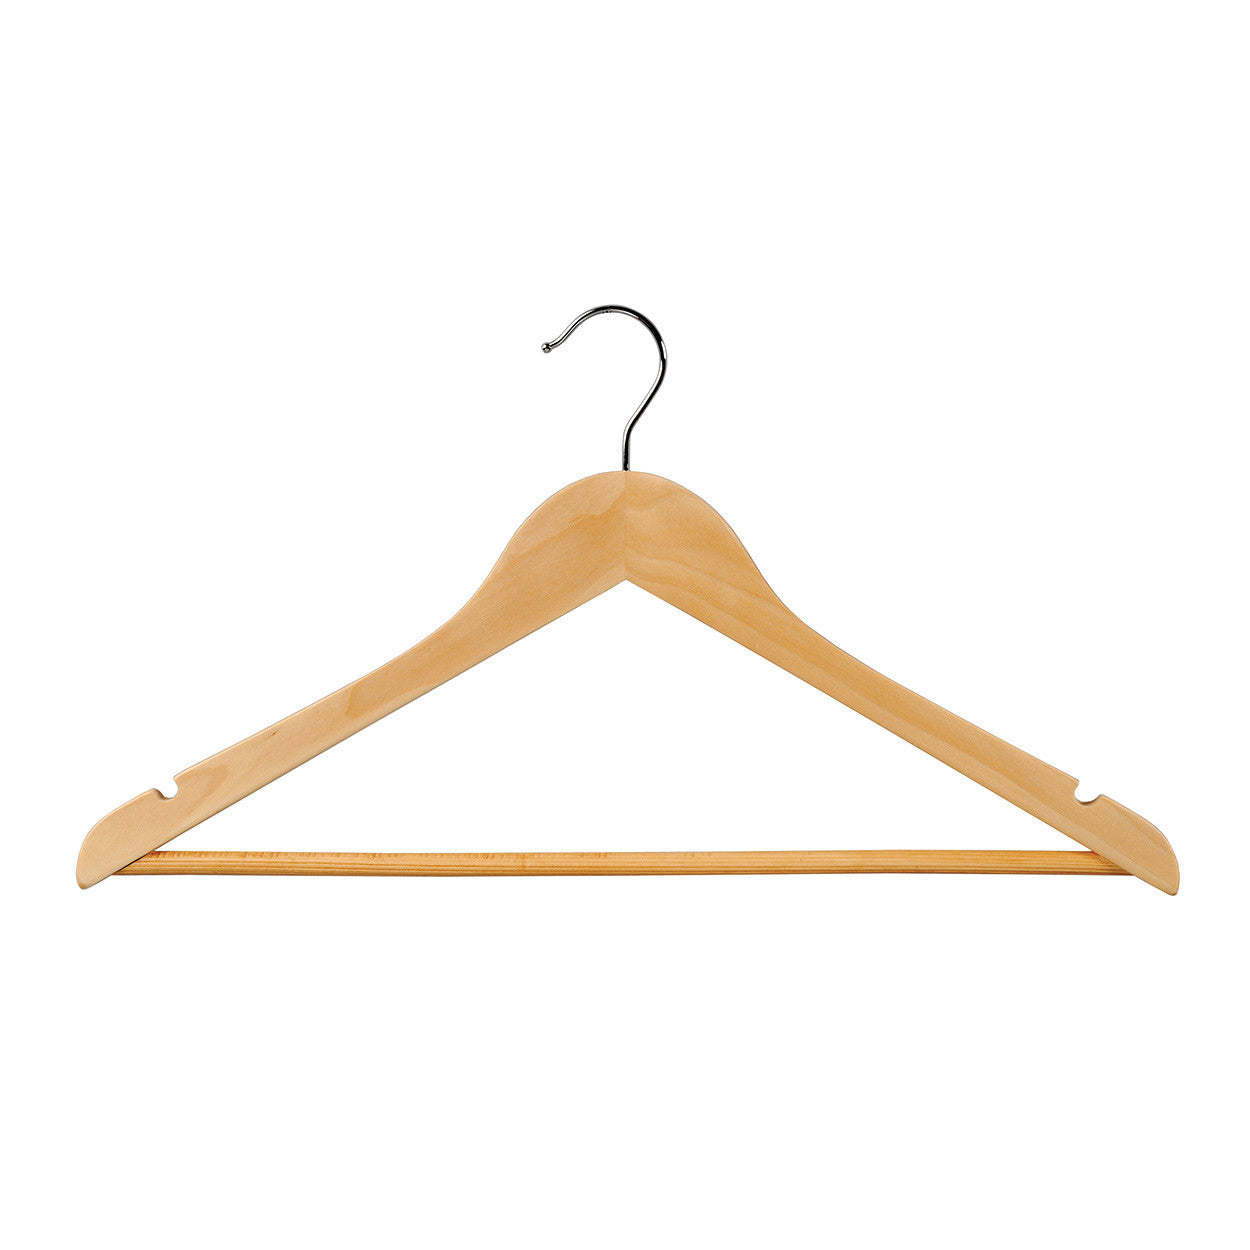 Beech Wooden hanger with notches & rail 440 W x 14 mm Thick (Box of 100) H2630BH-100